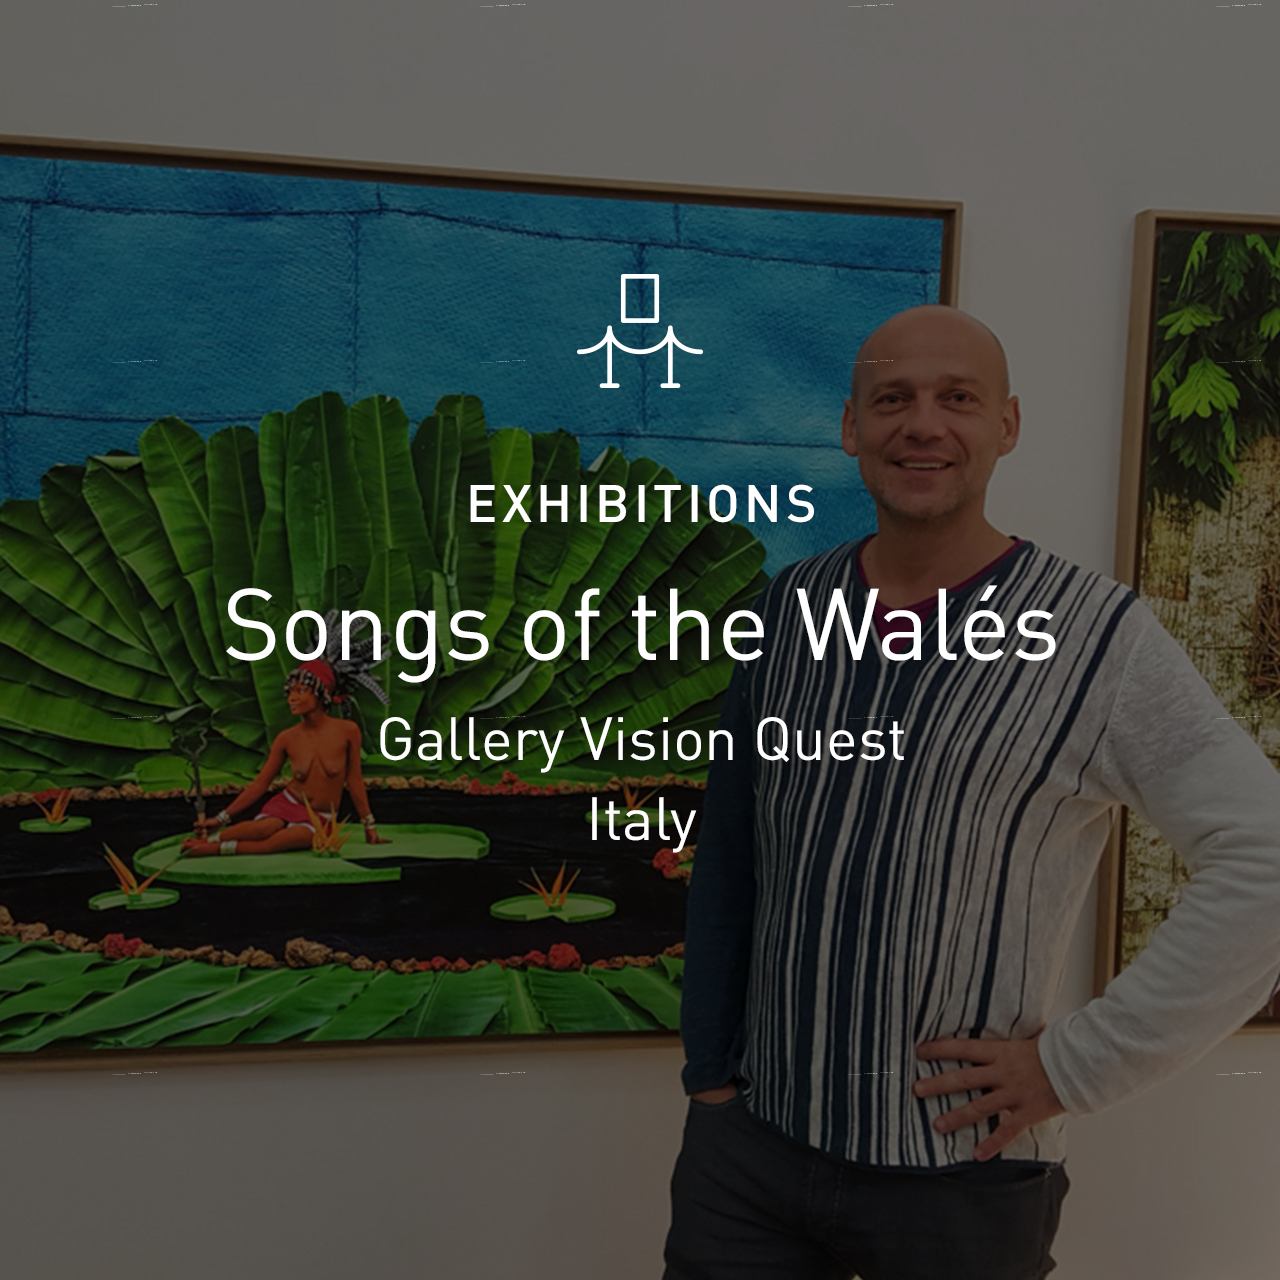 new_c_Songs_of_the_Walés_-_Exhibitions_VQ